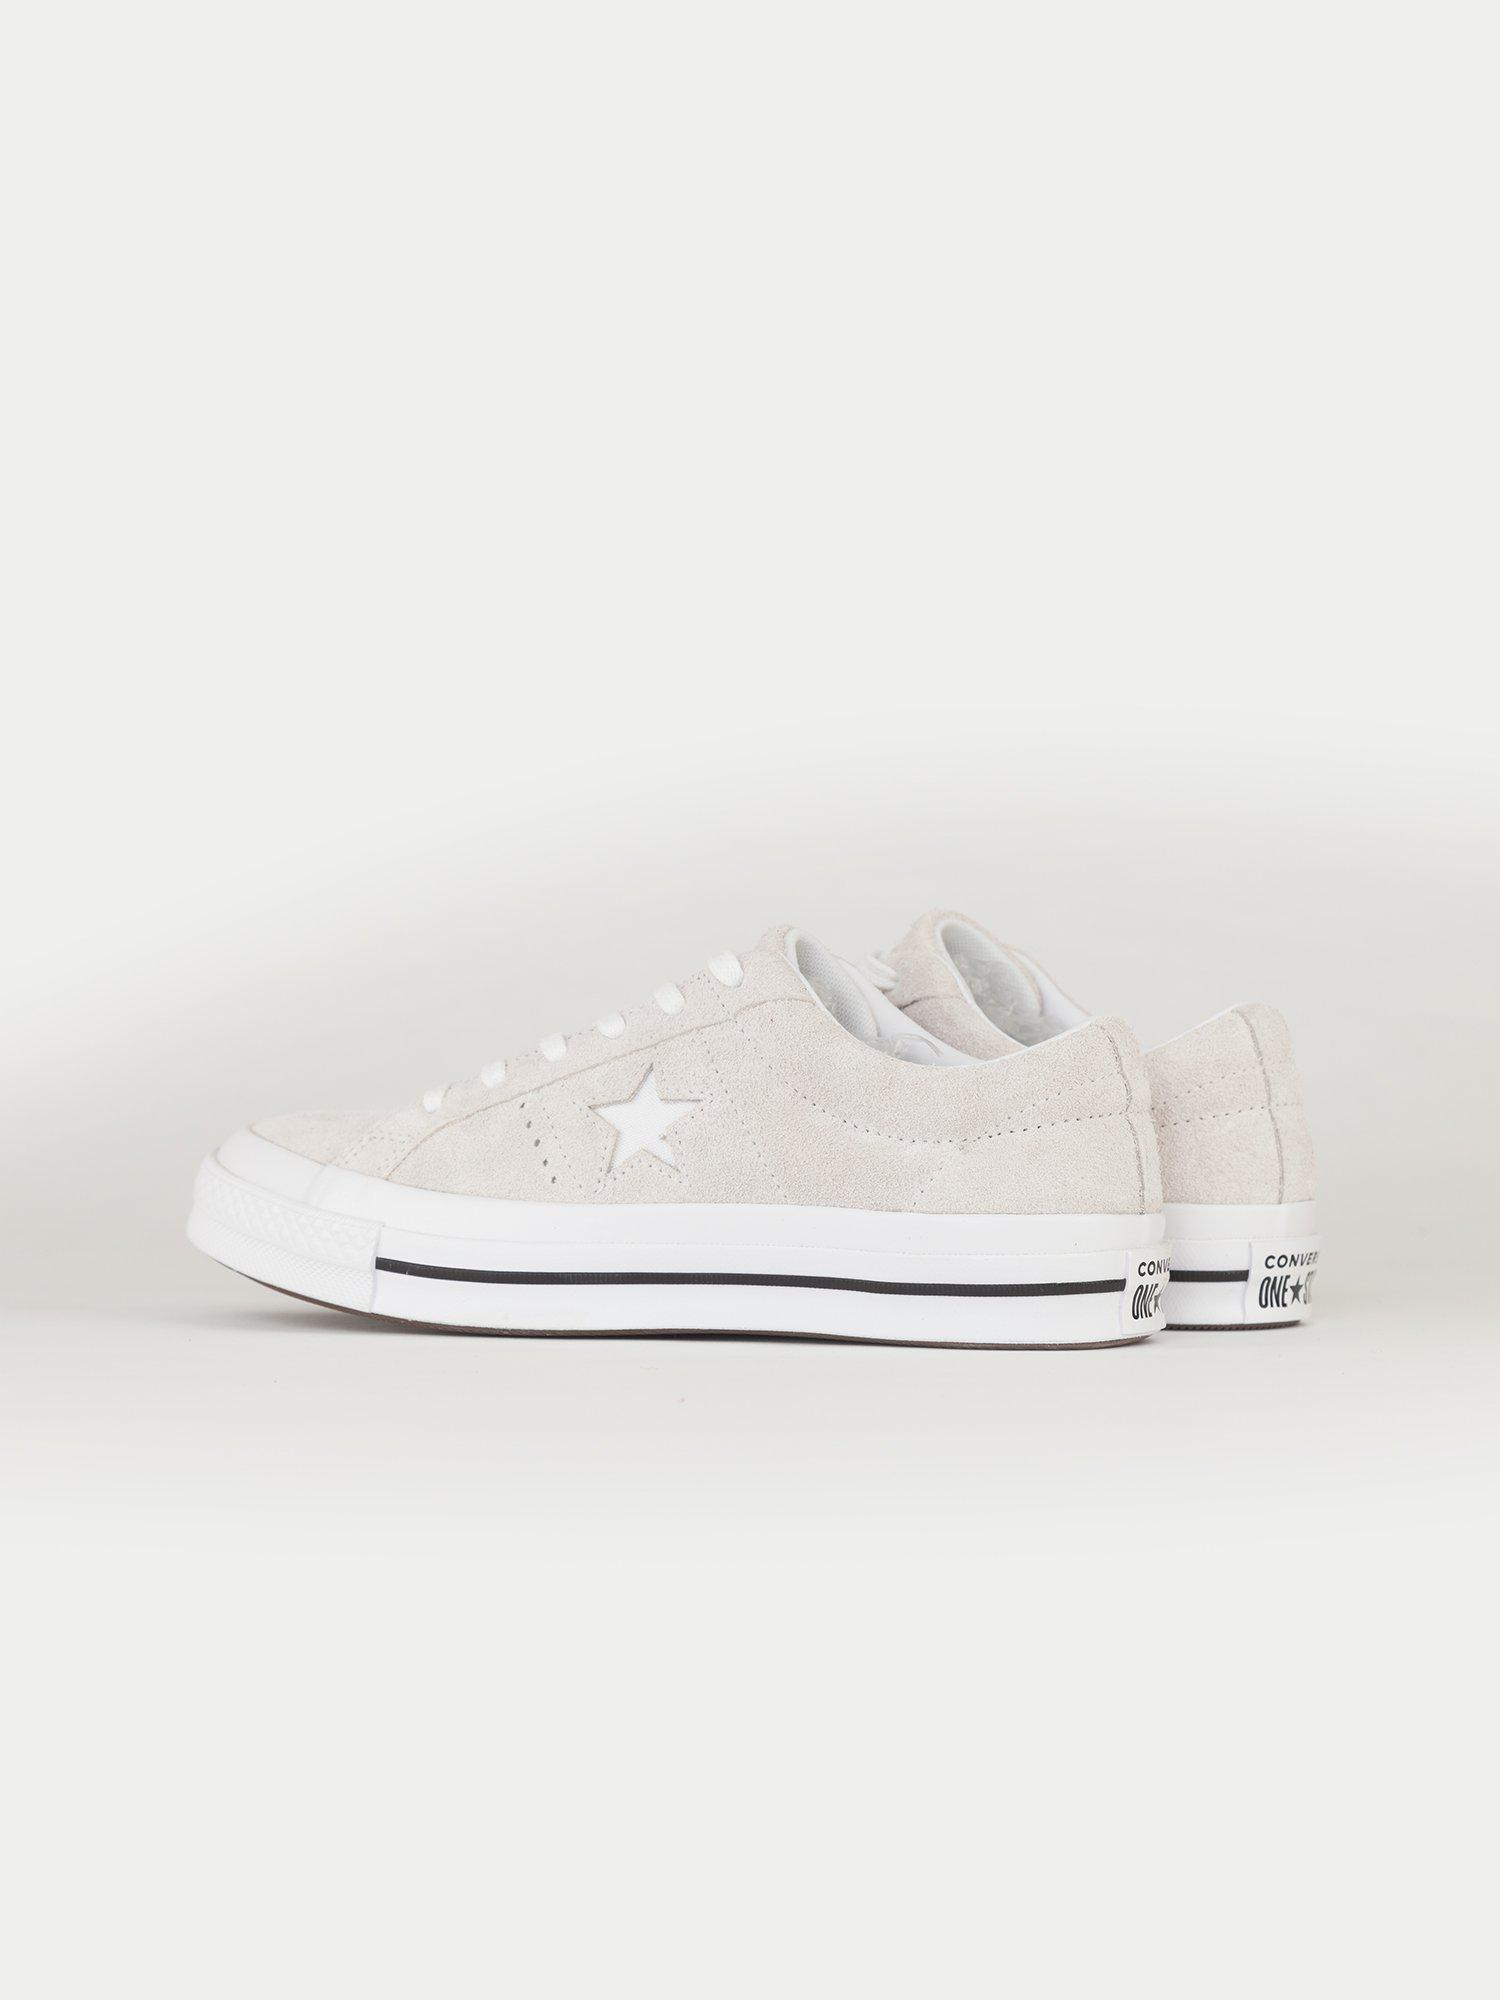 0cd97baacce331 Converse One Star Ox in White for Men - Lyst